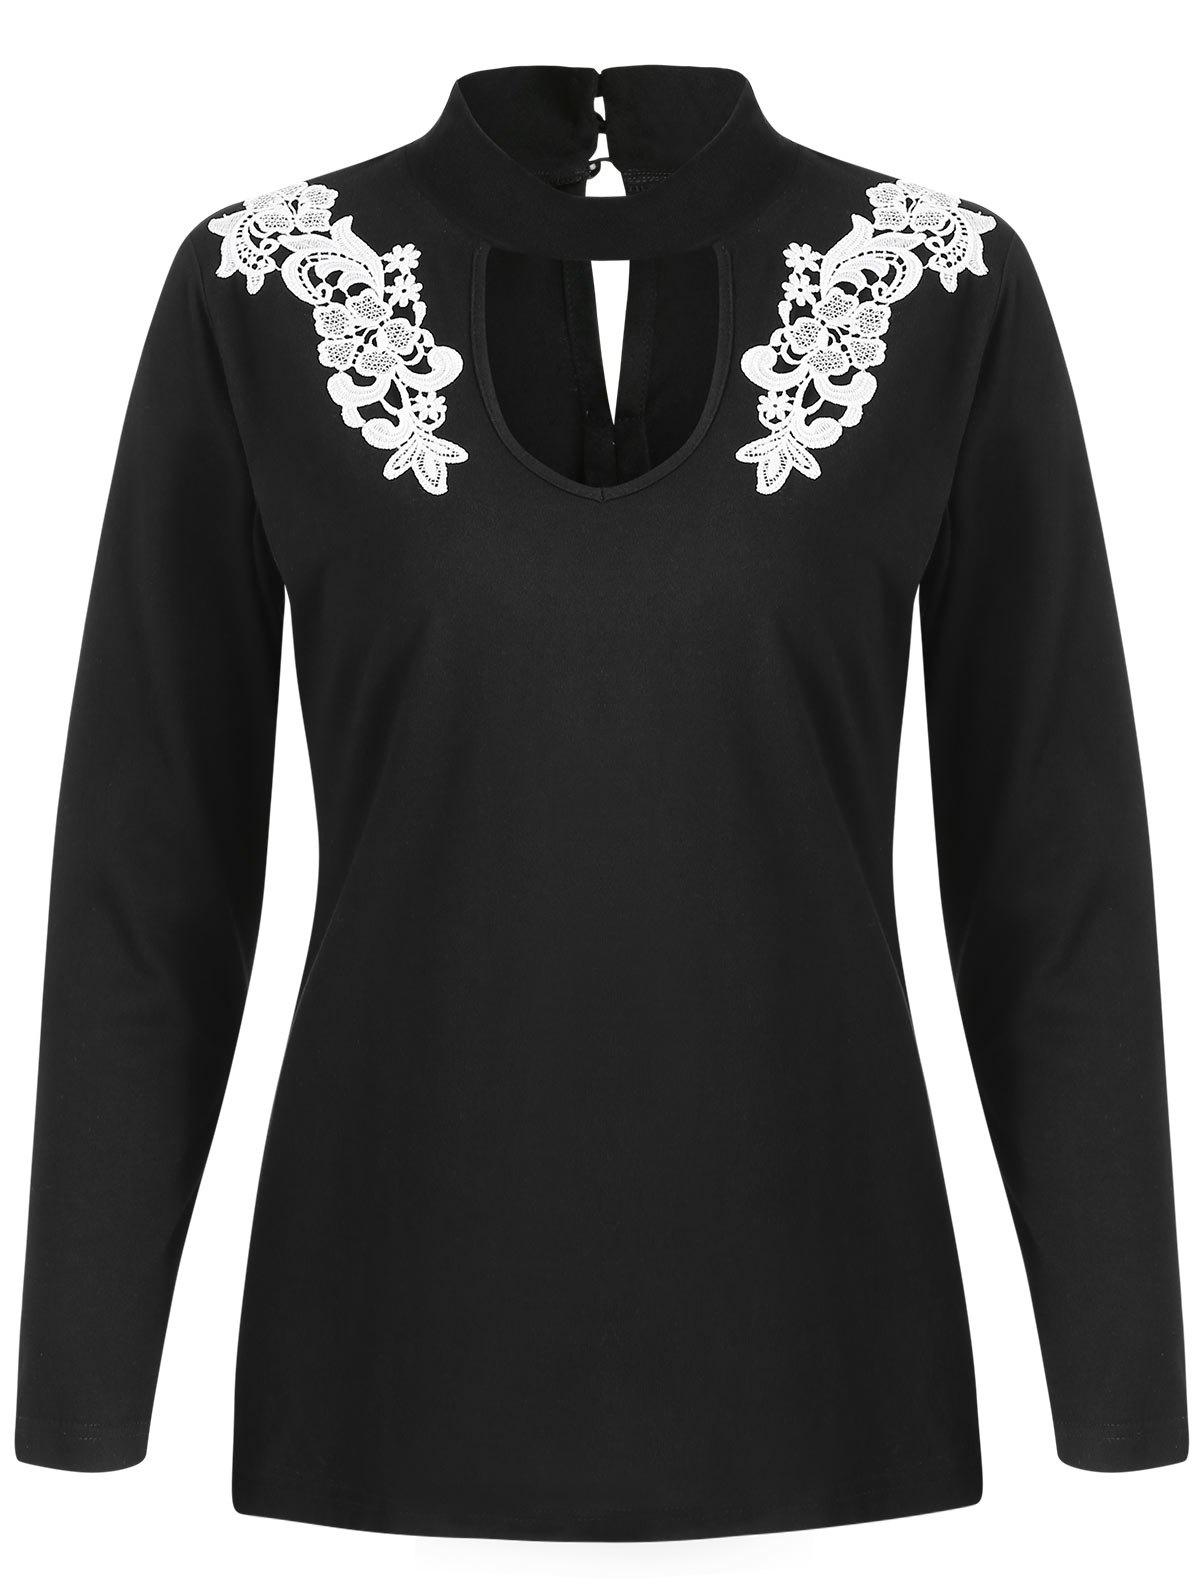 Sale Floral Applique Cut Out Full Sleeve T-shirt